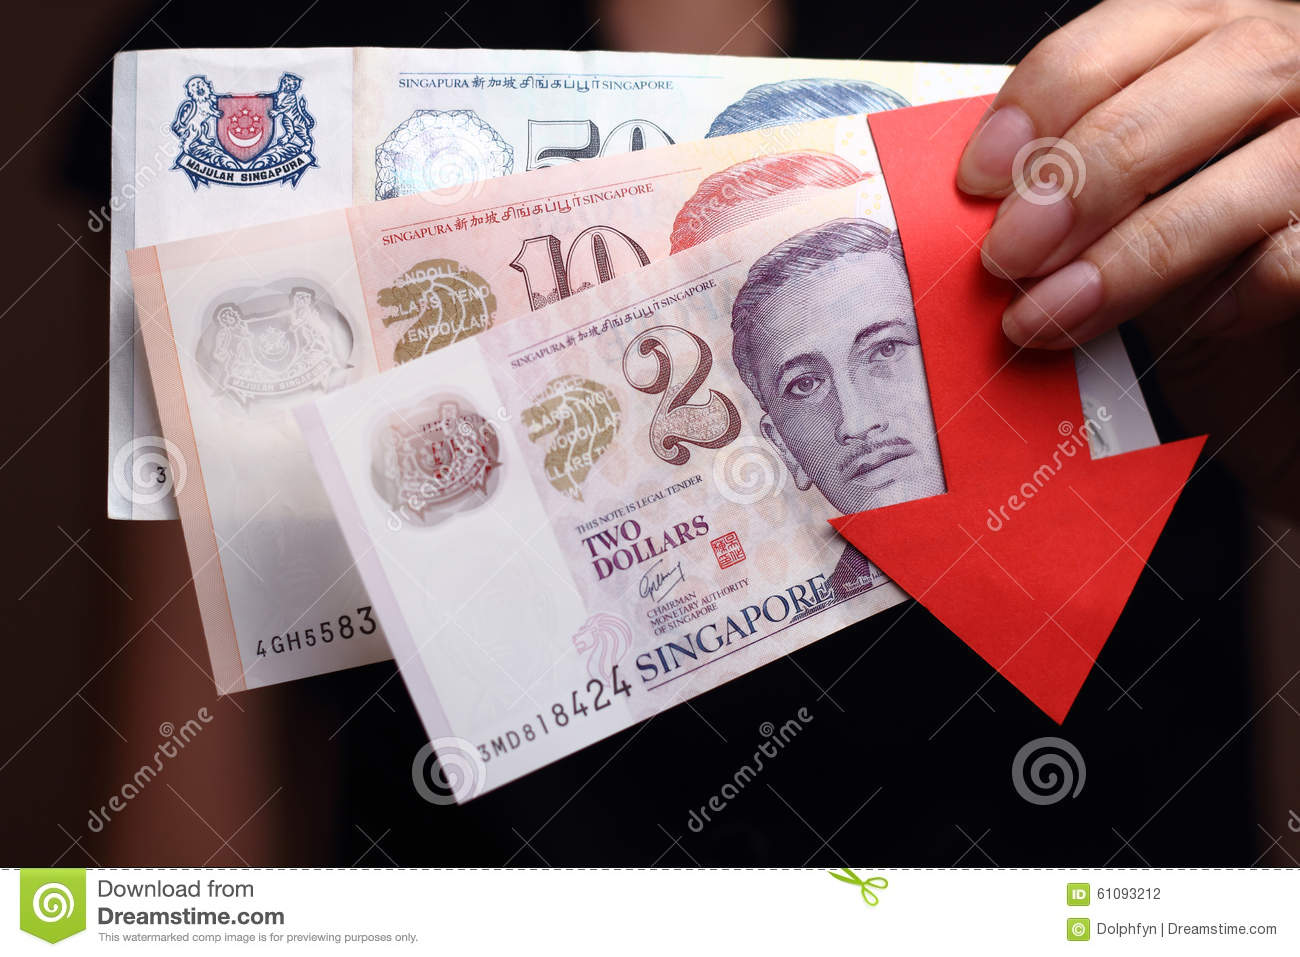 Singapore Dollar With A Red Arrow To Imply The Fall Or Devaluation Of Singapore Dollar Currencies